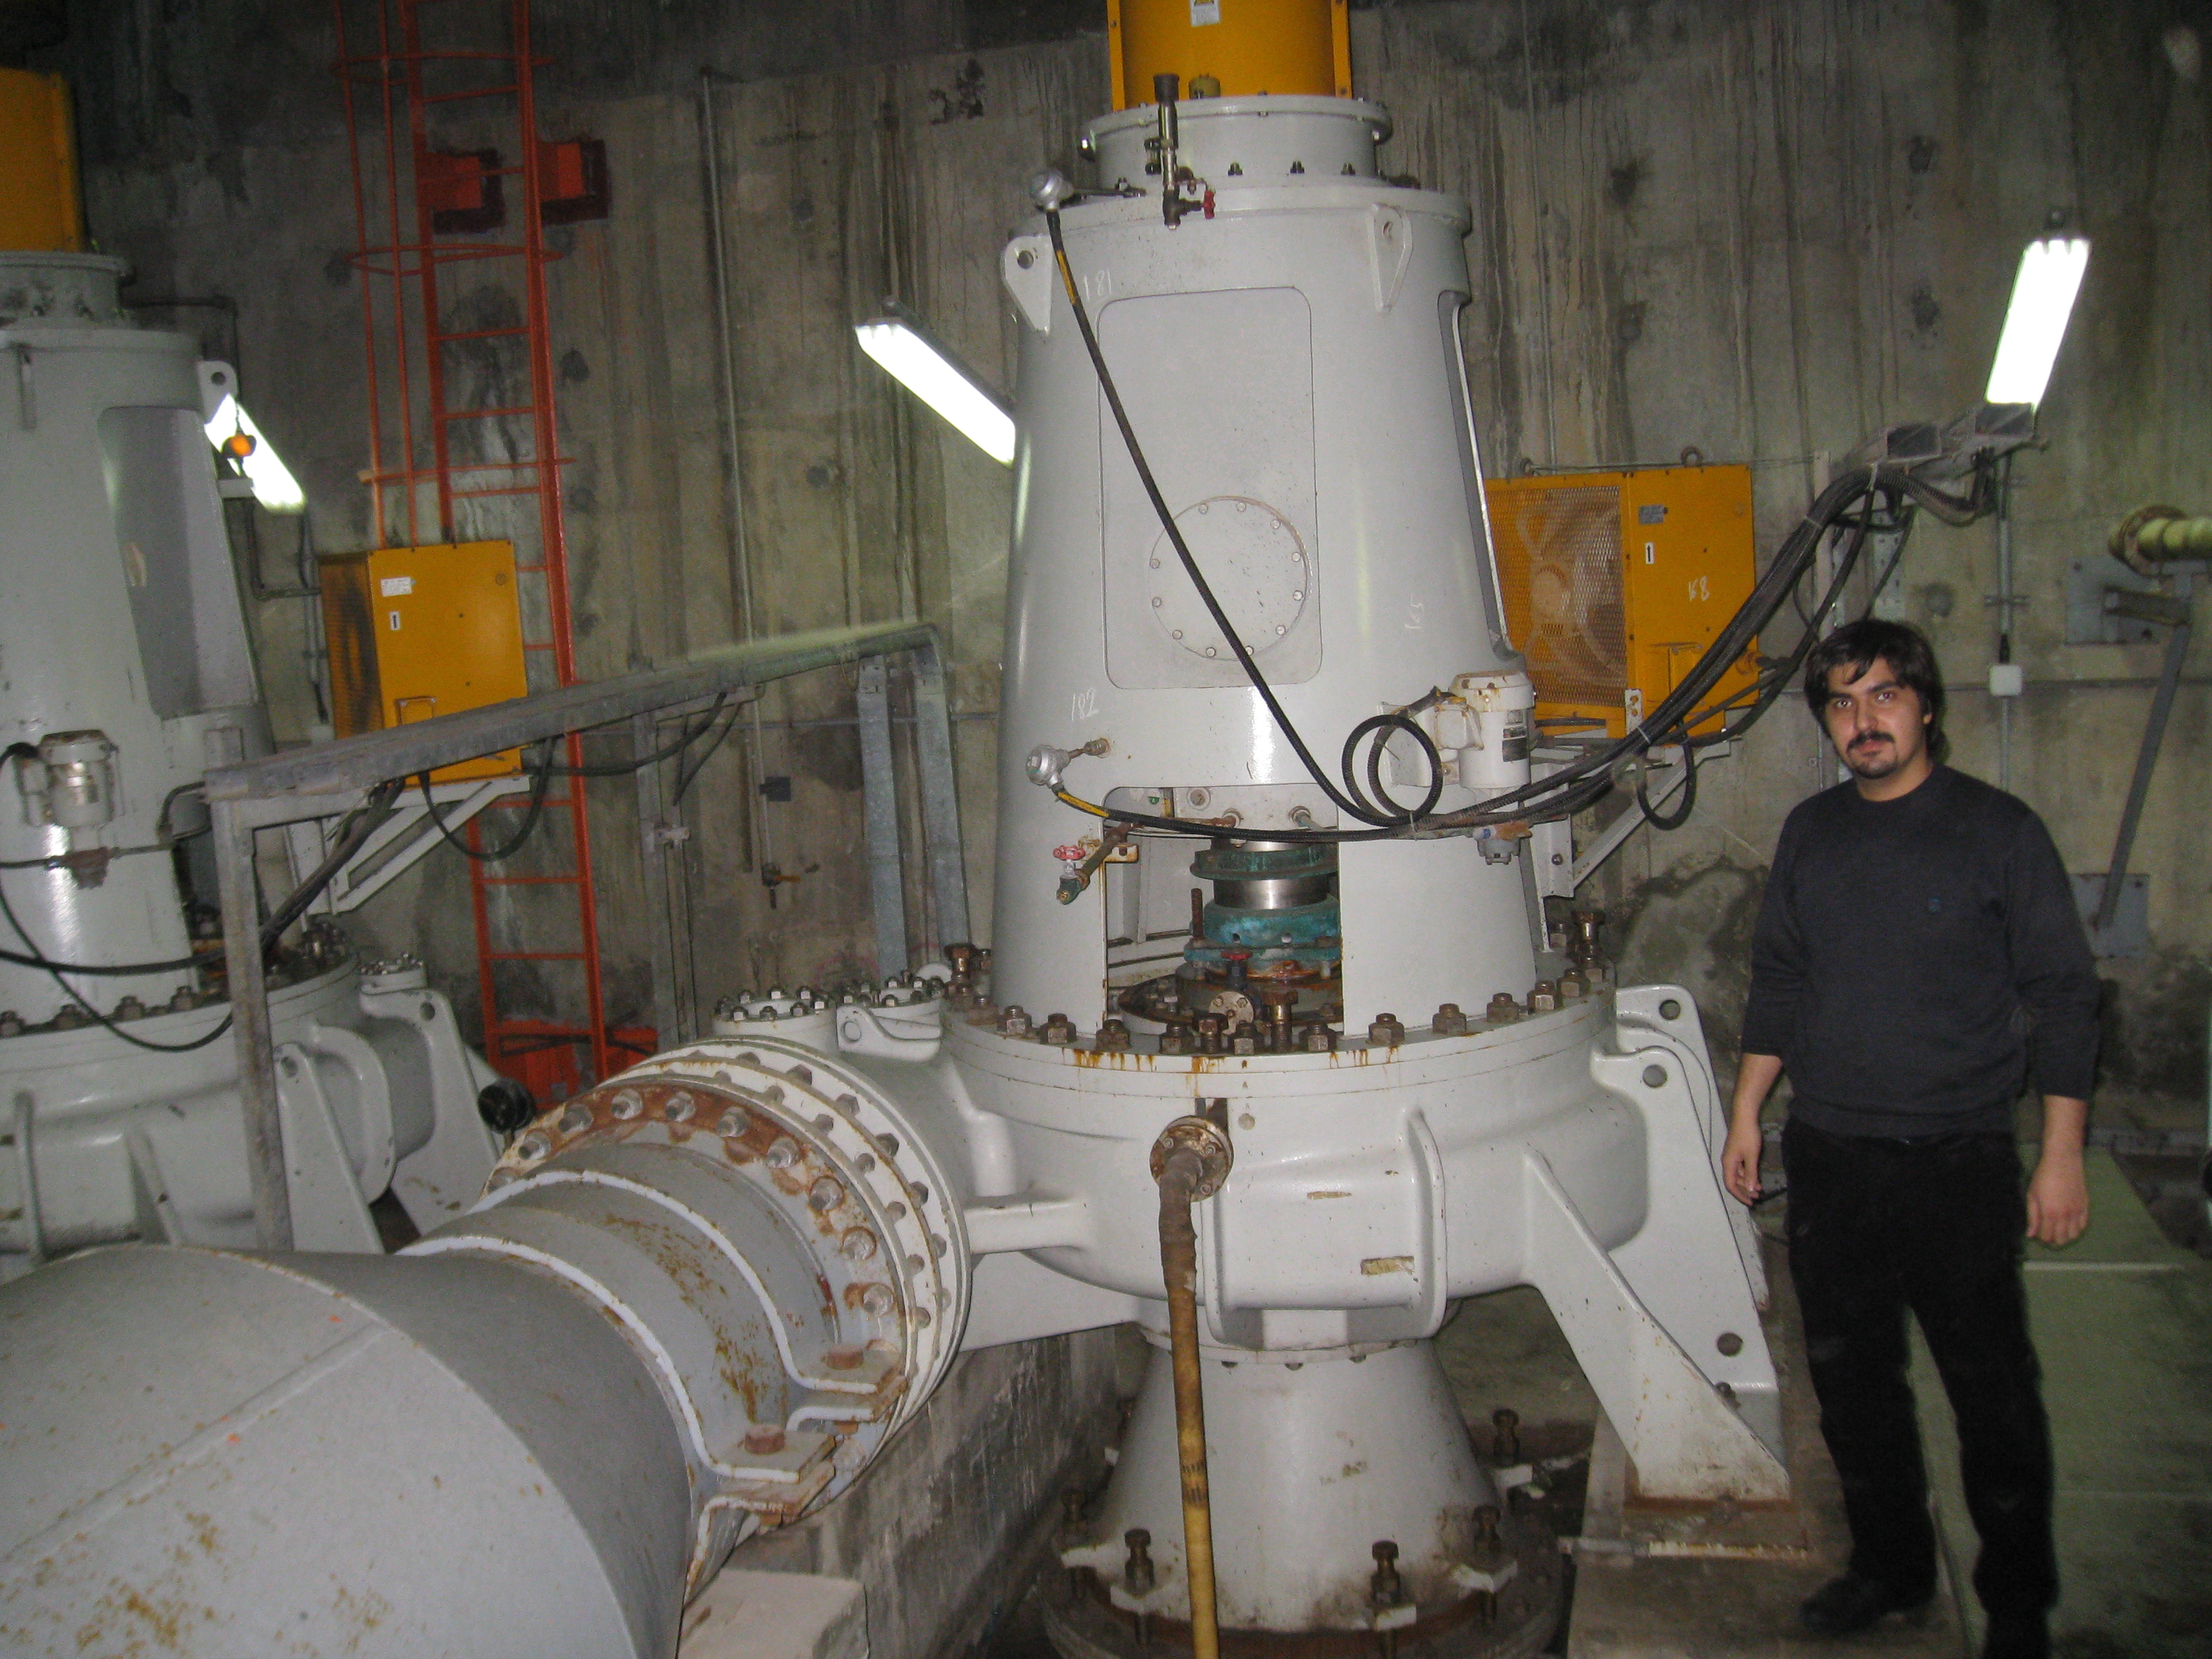 Behzad and the Hitachi pump